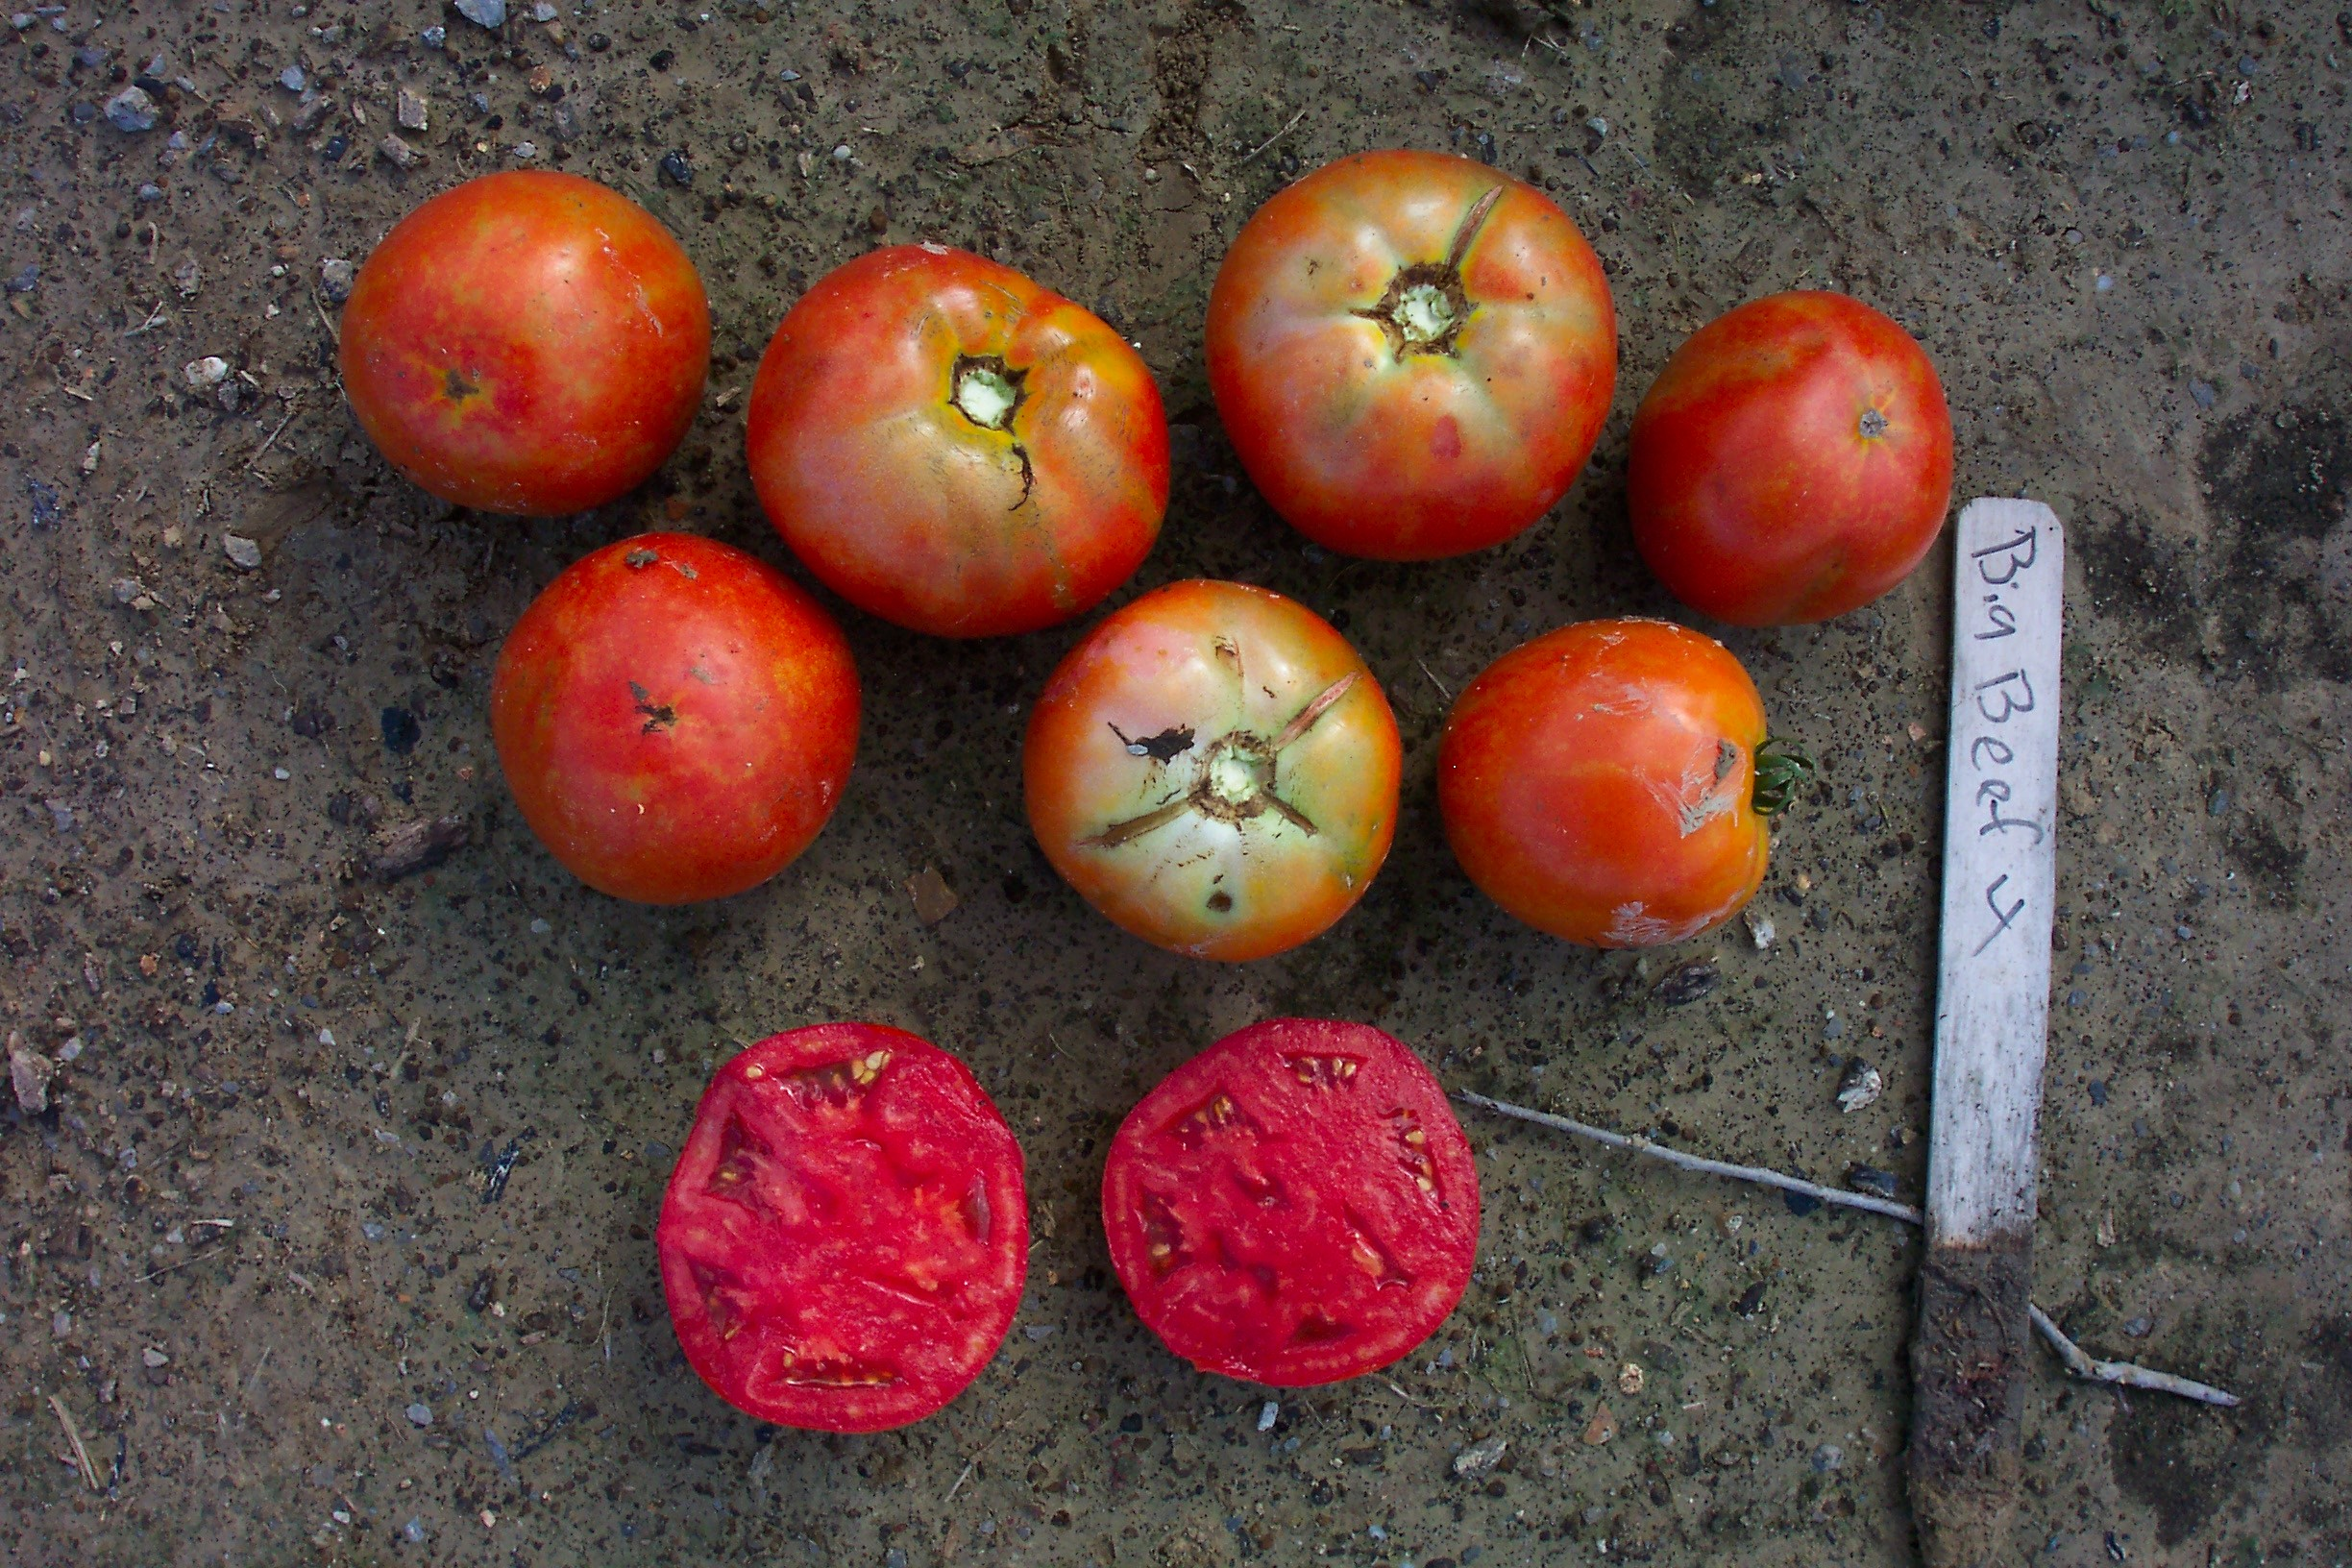 Performance of Thirteen Homeowner Tomato Varieties in the Summer of 2007